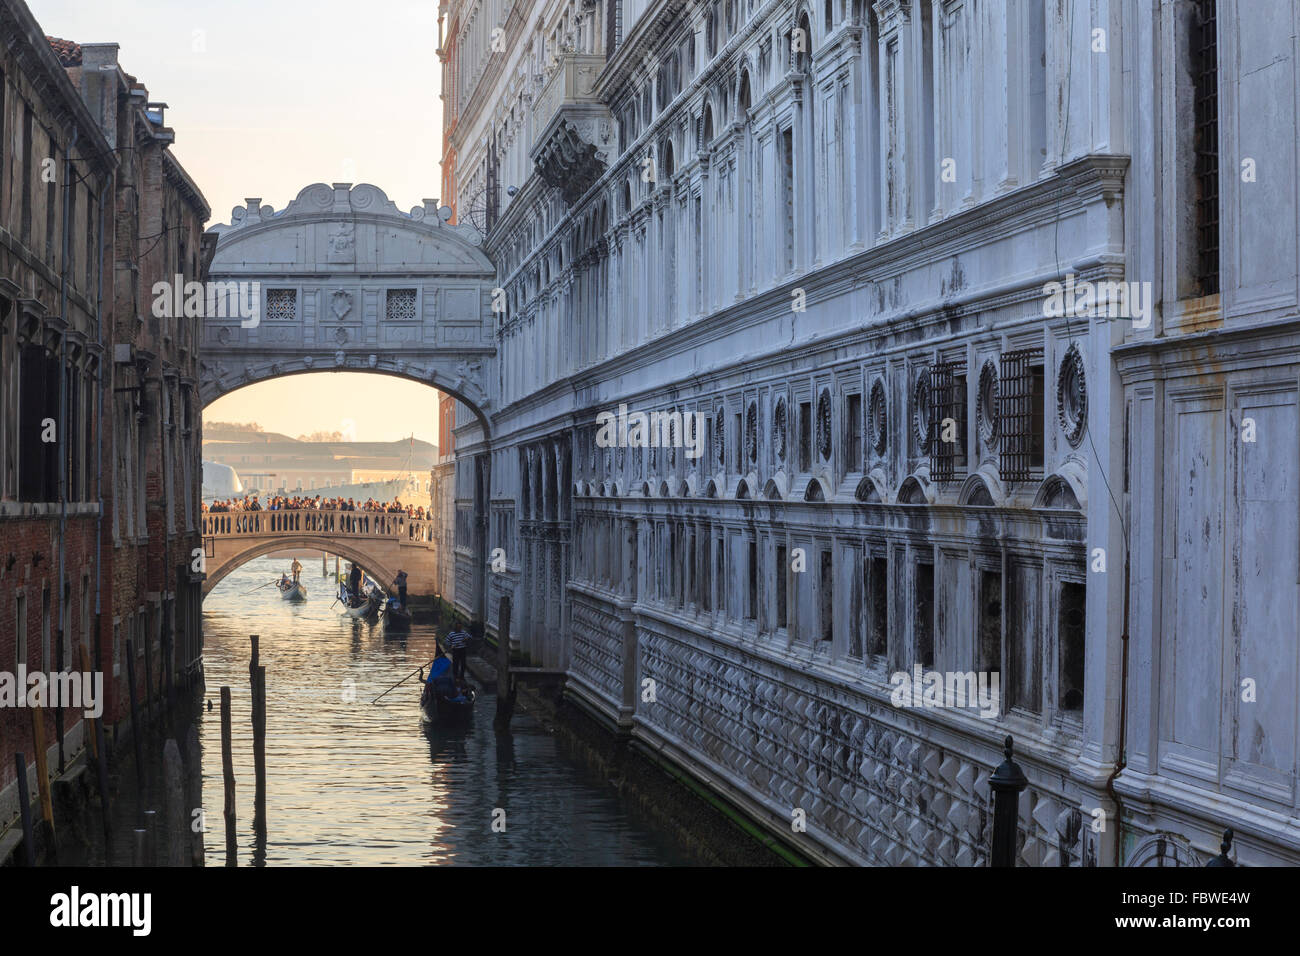 The Bridge of Sighs in Venice, Italy - Stock Image